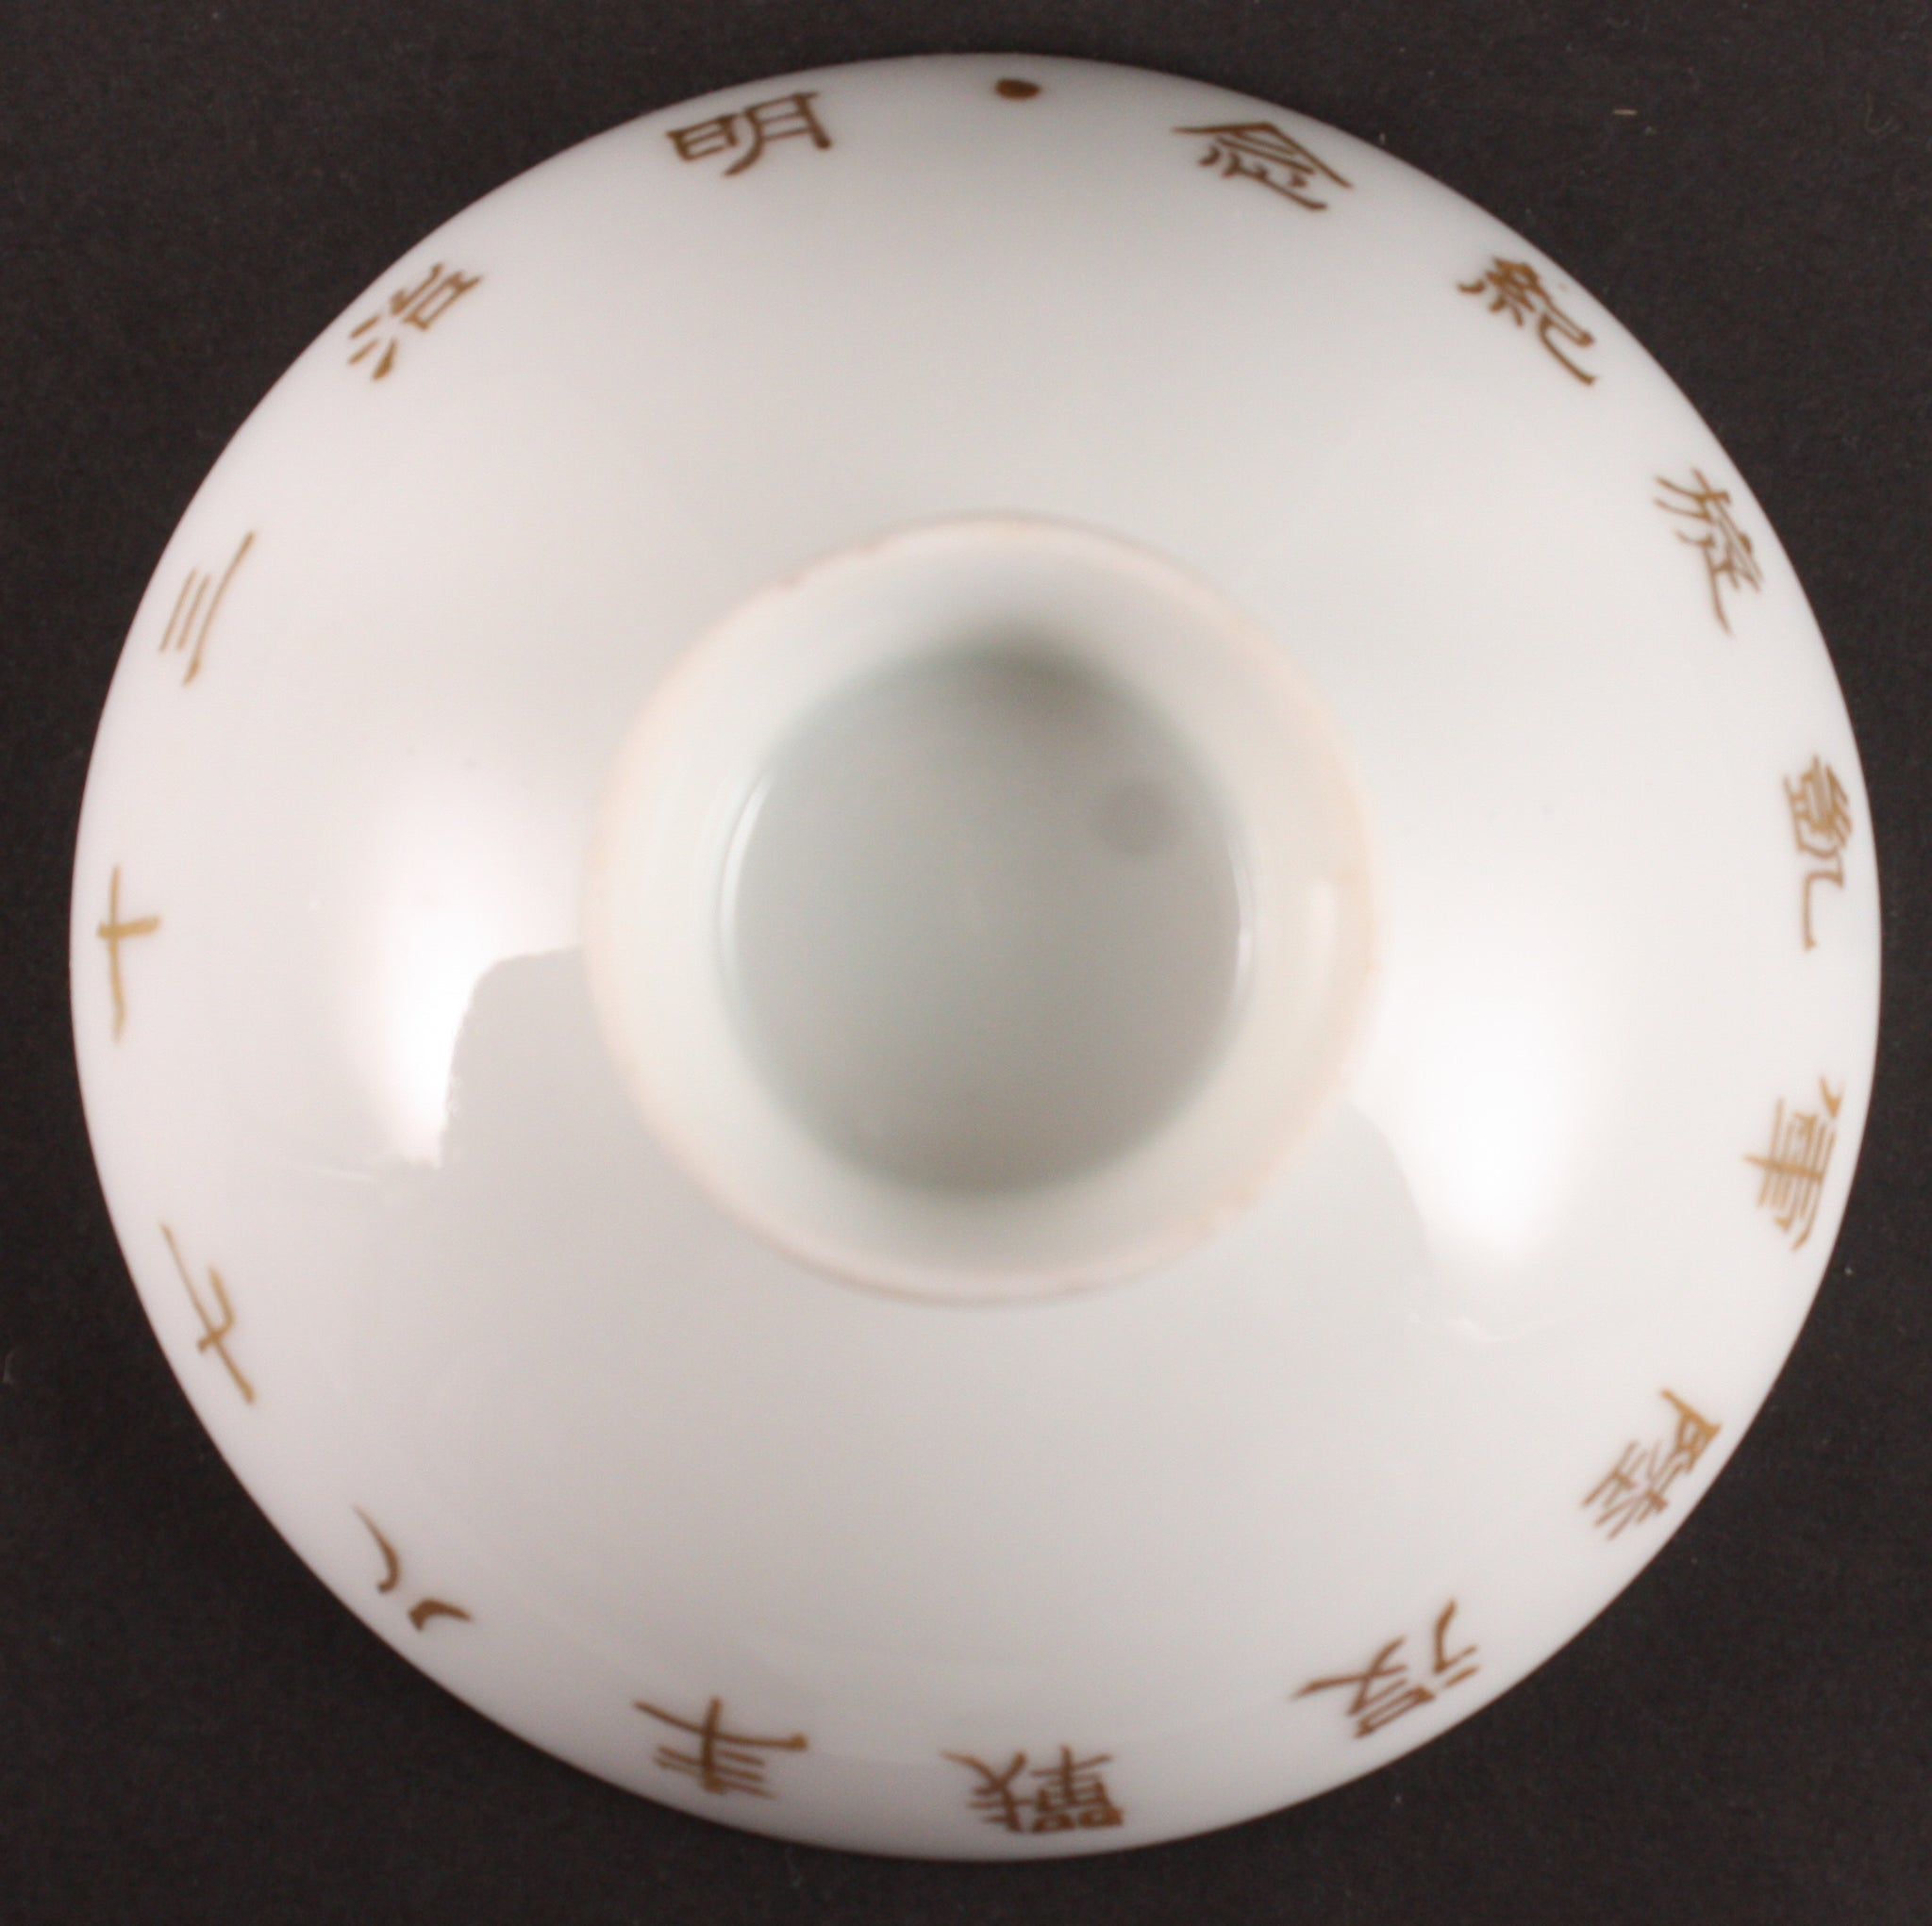 Russo Japanese War Imperial Chrysanthemum Victory Army Sake Cup